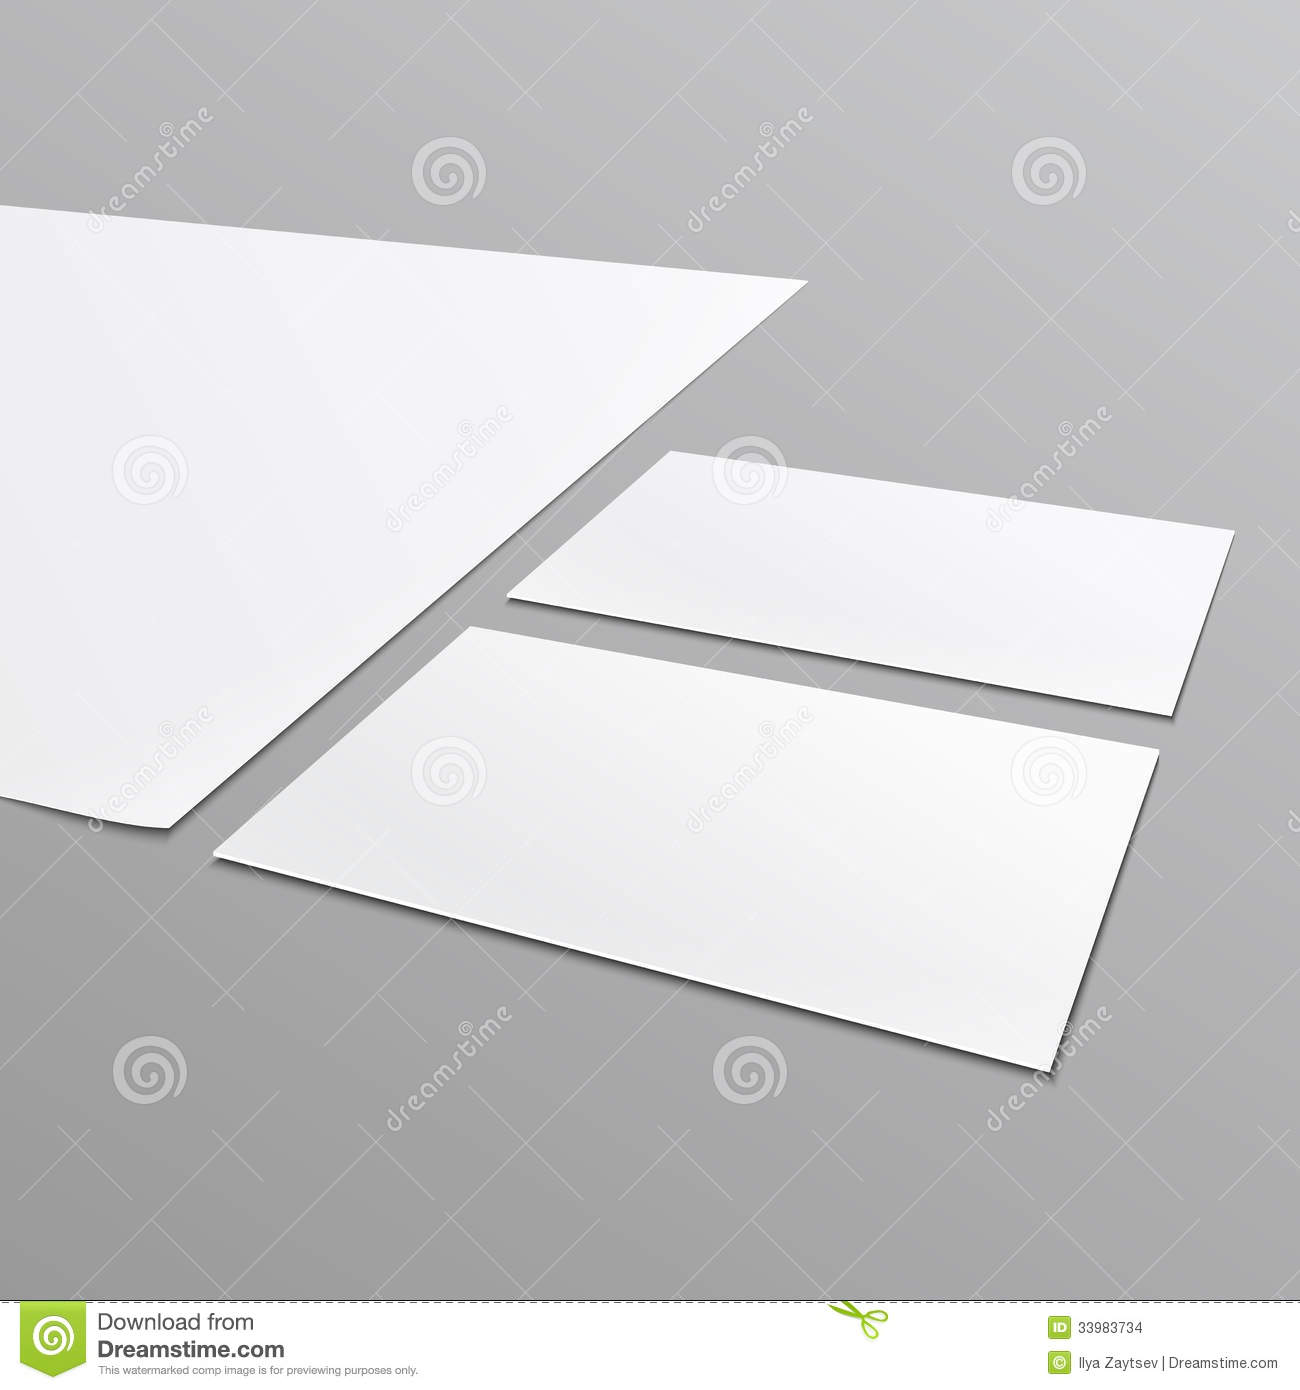 Blank Stationery Layout, A4 Paper, Business Card. Stock Vector ...